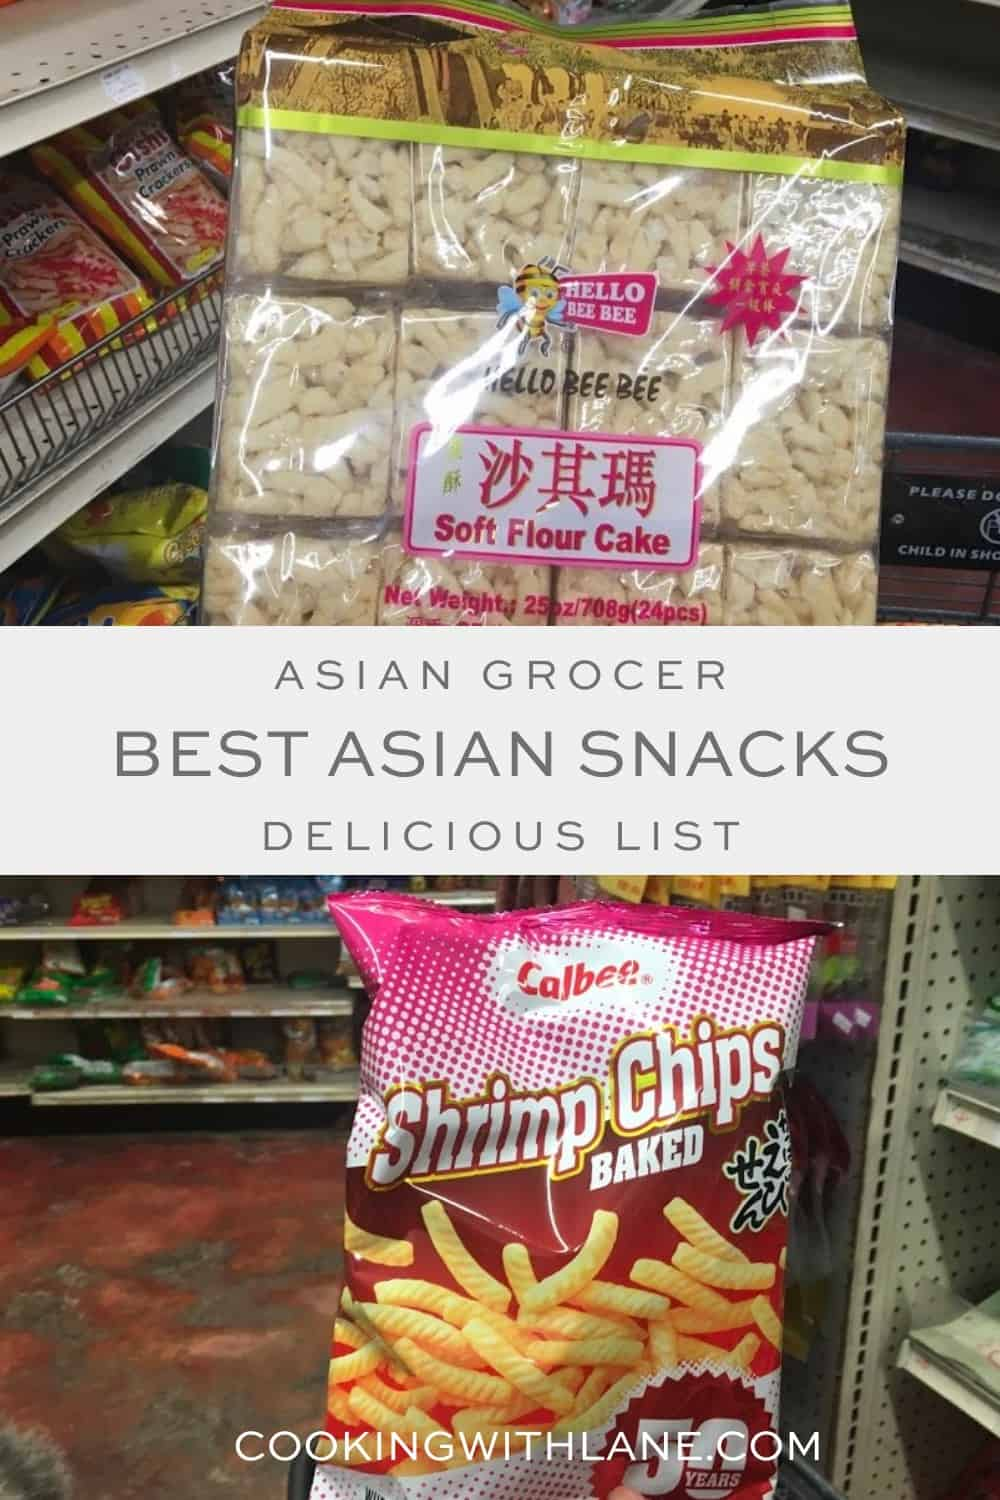 Snacks to get at Asian Grocery Store